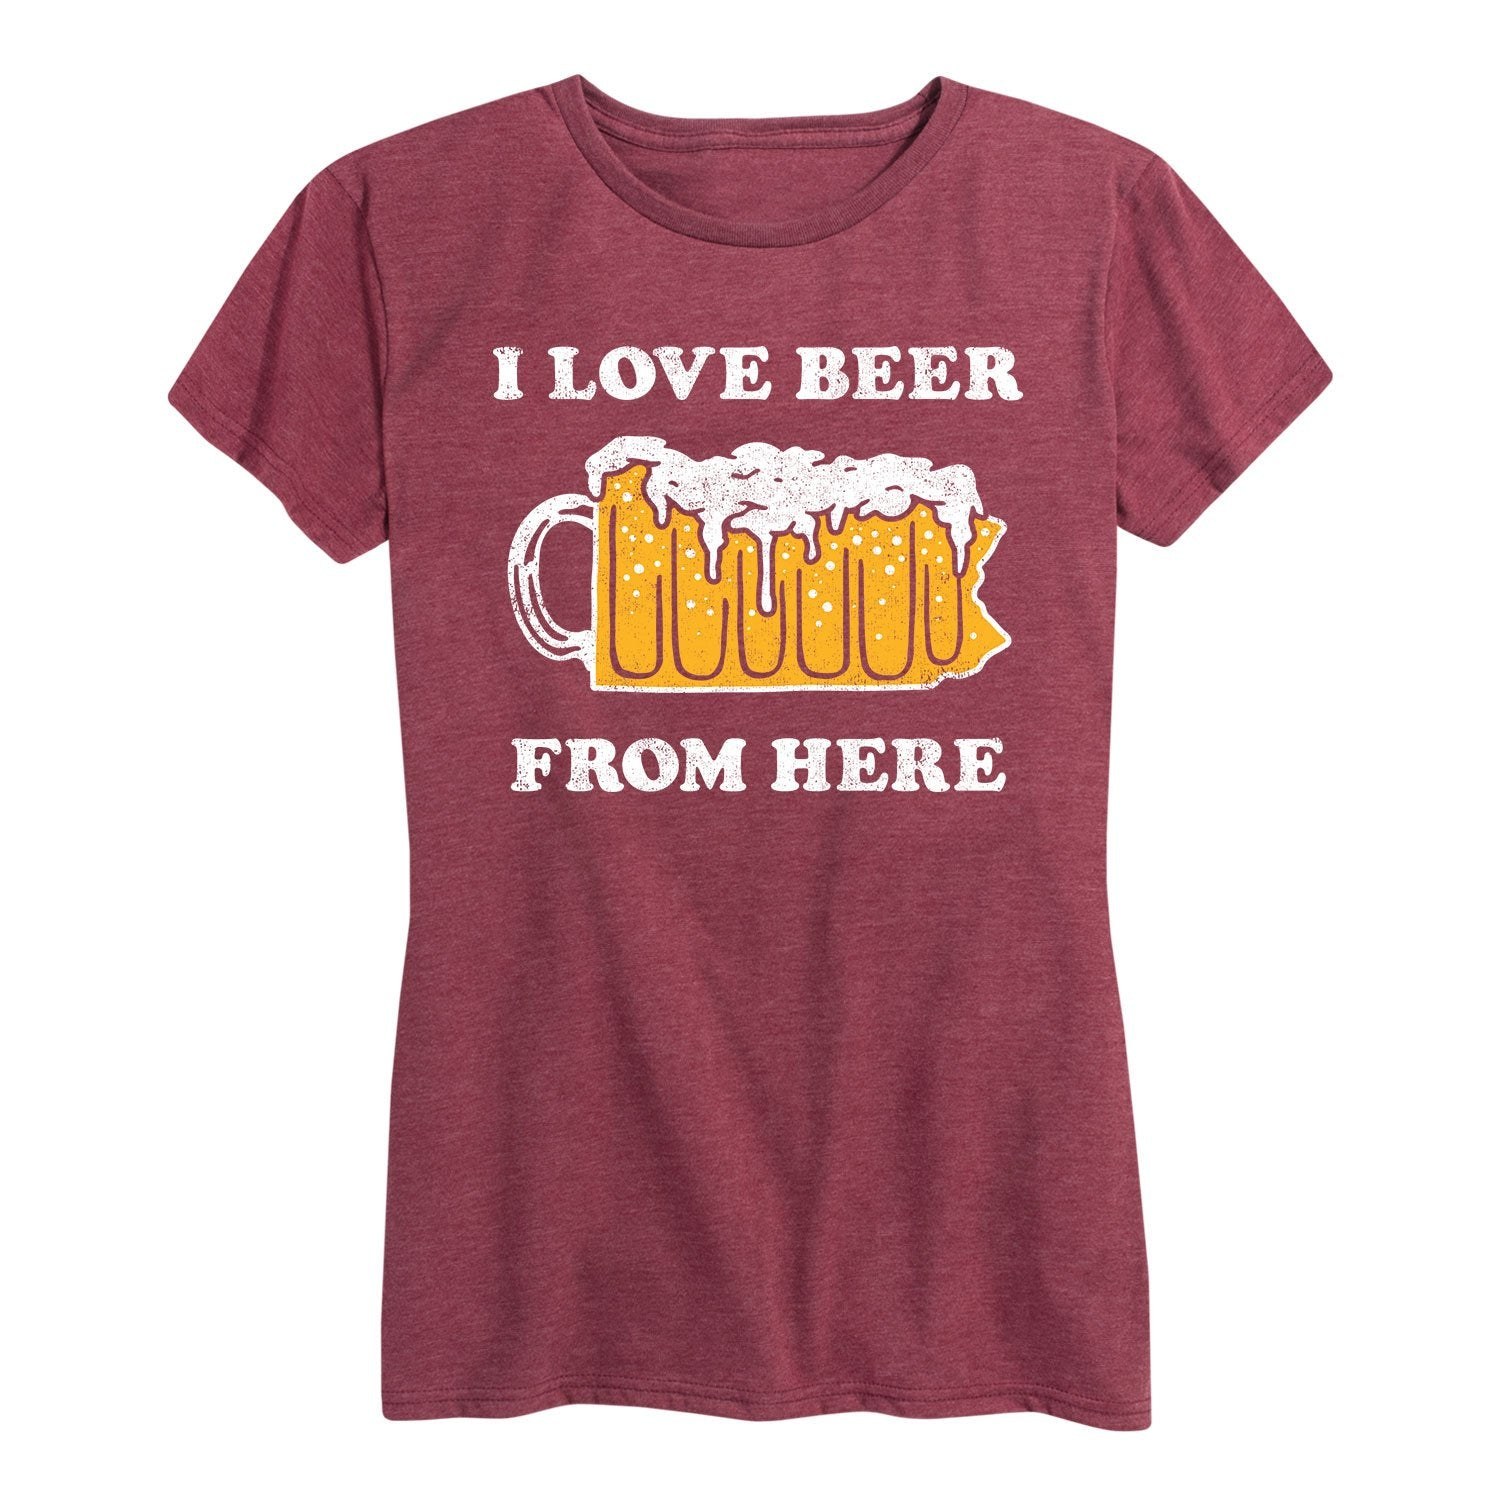 I Love Beer From Here Pennsylvania - Women's Short Sleeve T-Shirt